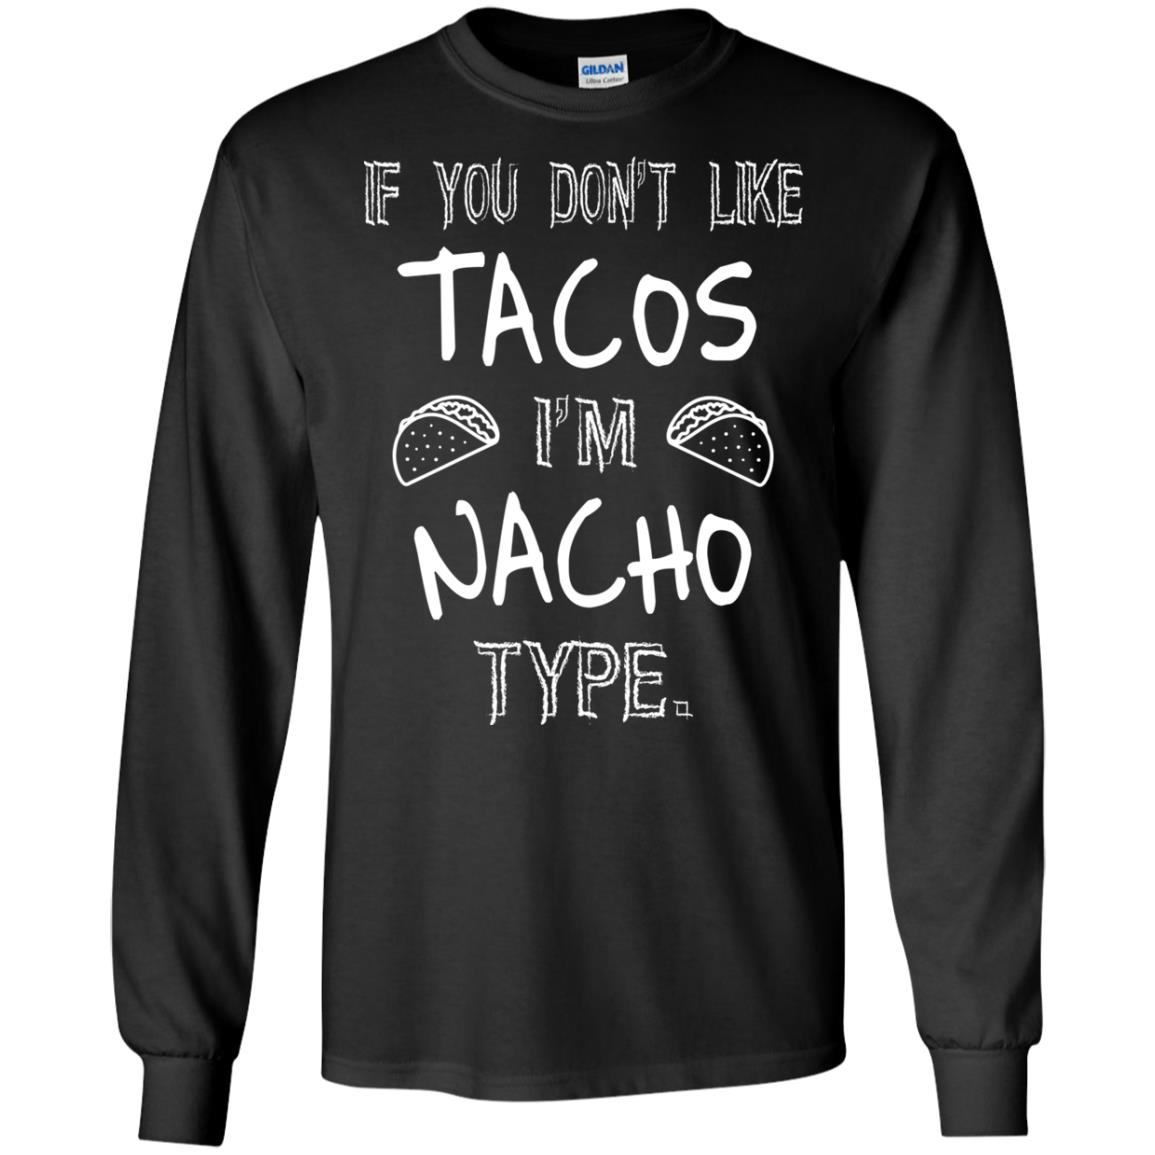 image 75px If you don't like tacos I'm Nacho Type T Shirts, Tank Top, Sweatshirt